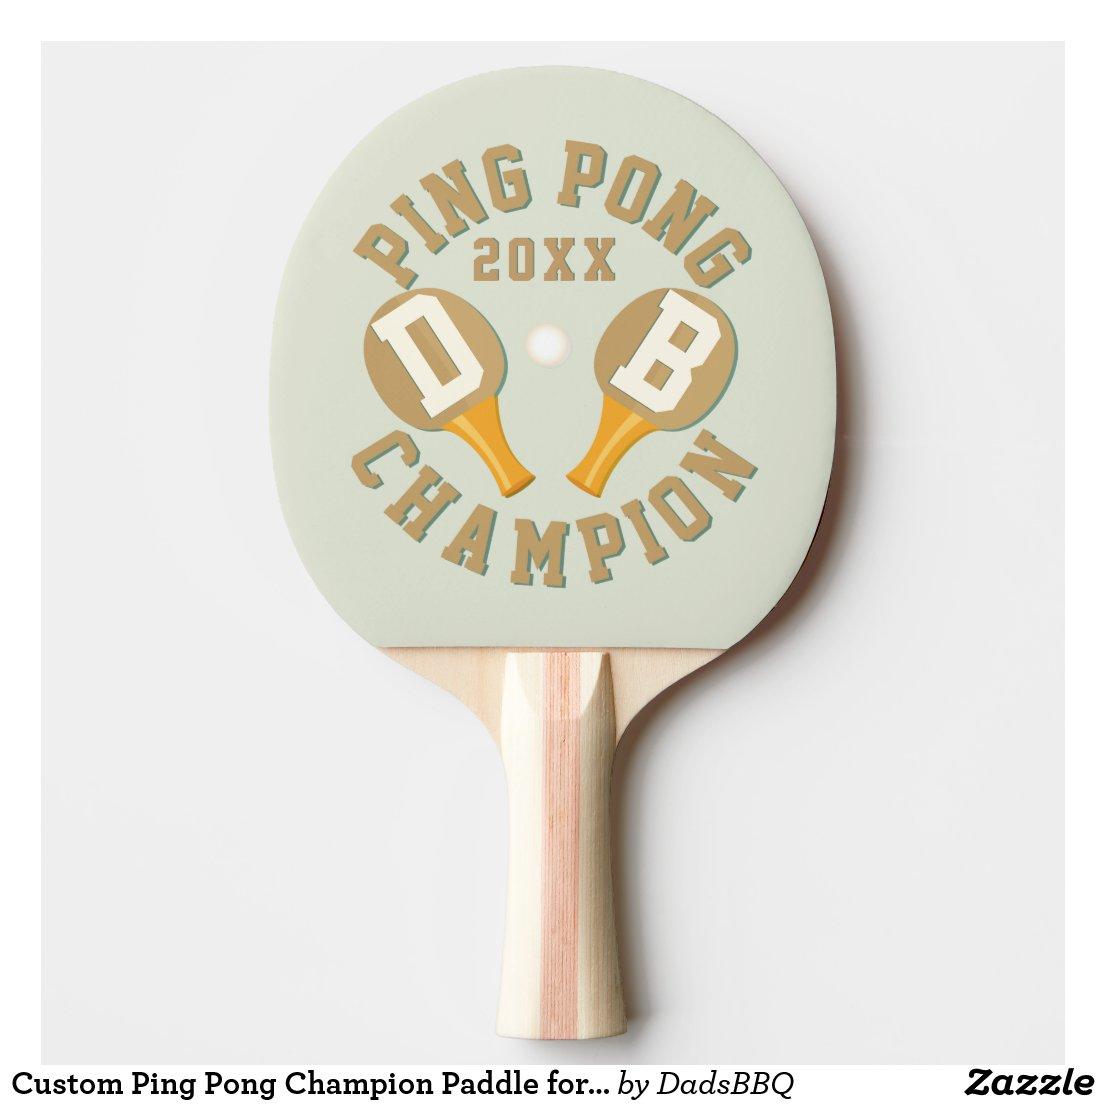 Custom Ping Pong Champion Paddle for Champions